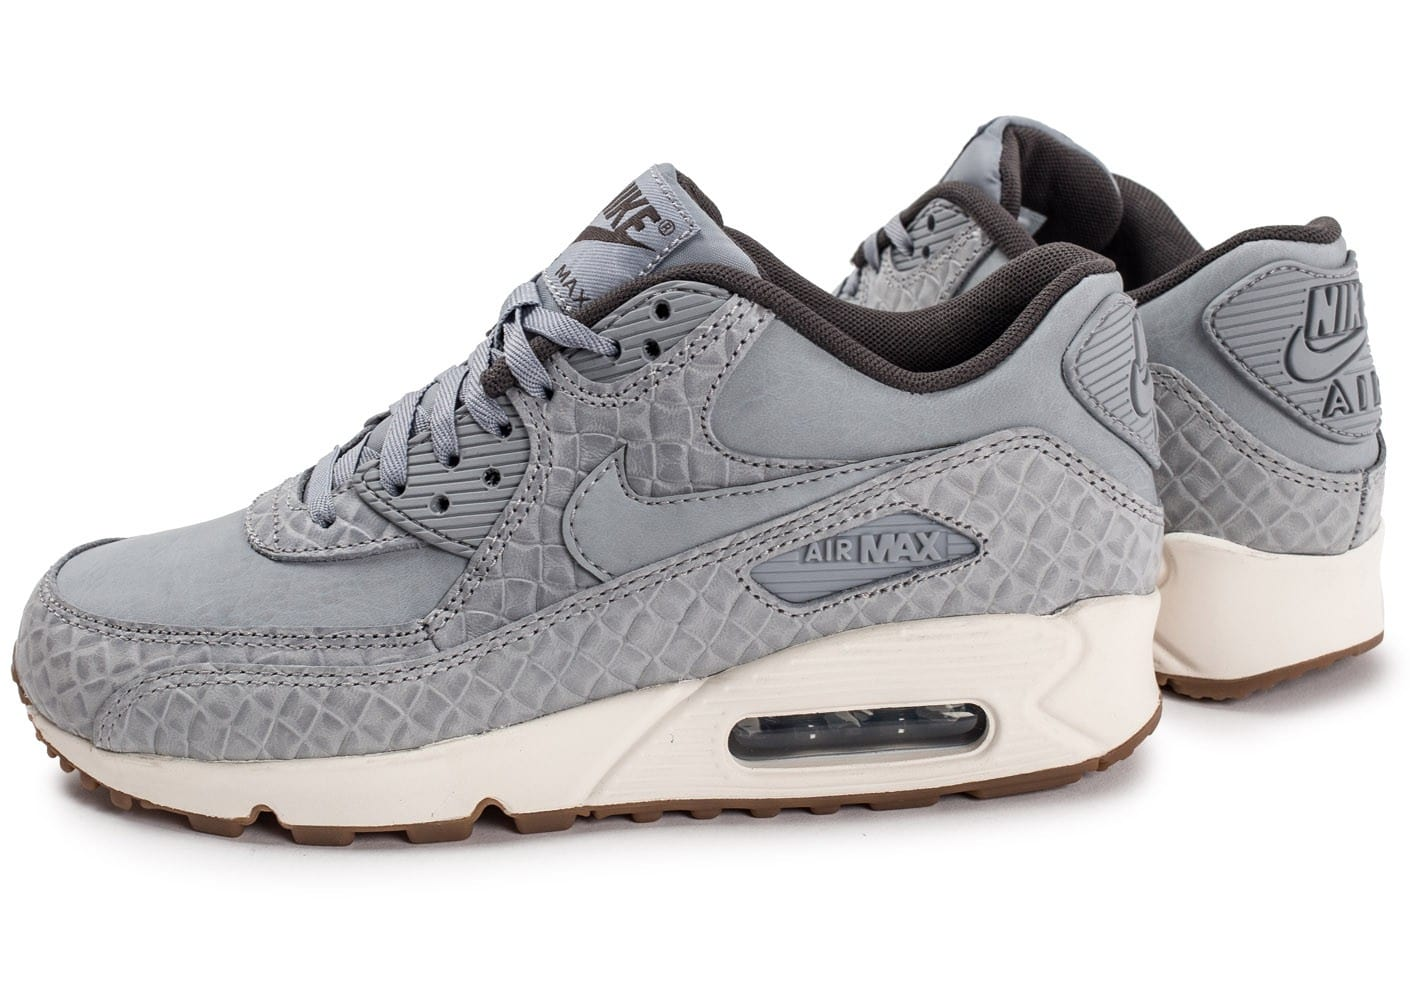 quality design 23b48 29be5 ... chaussures nike air max 90 premium grise vue par paire